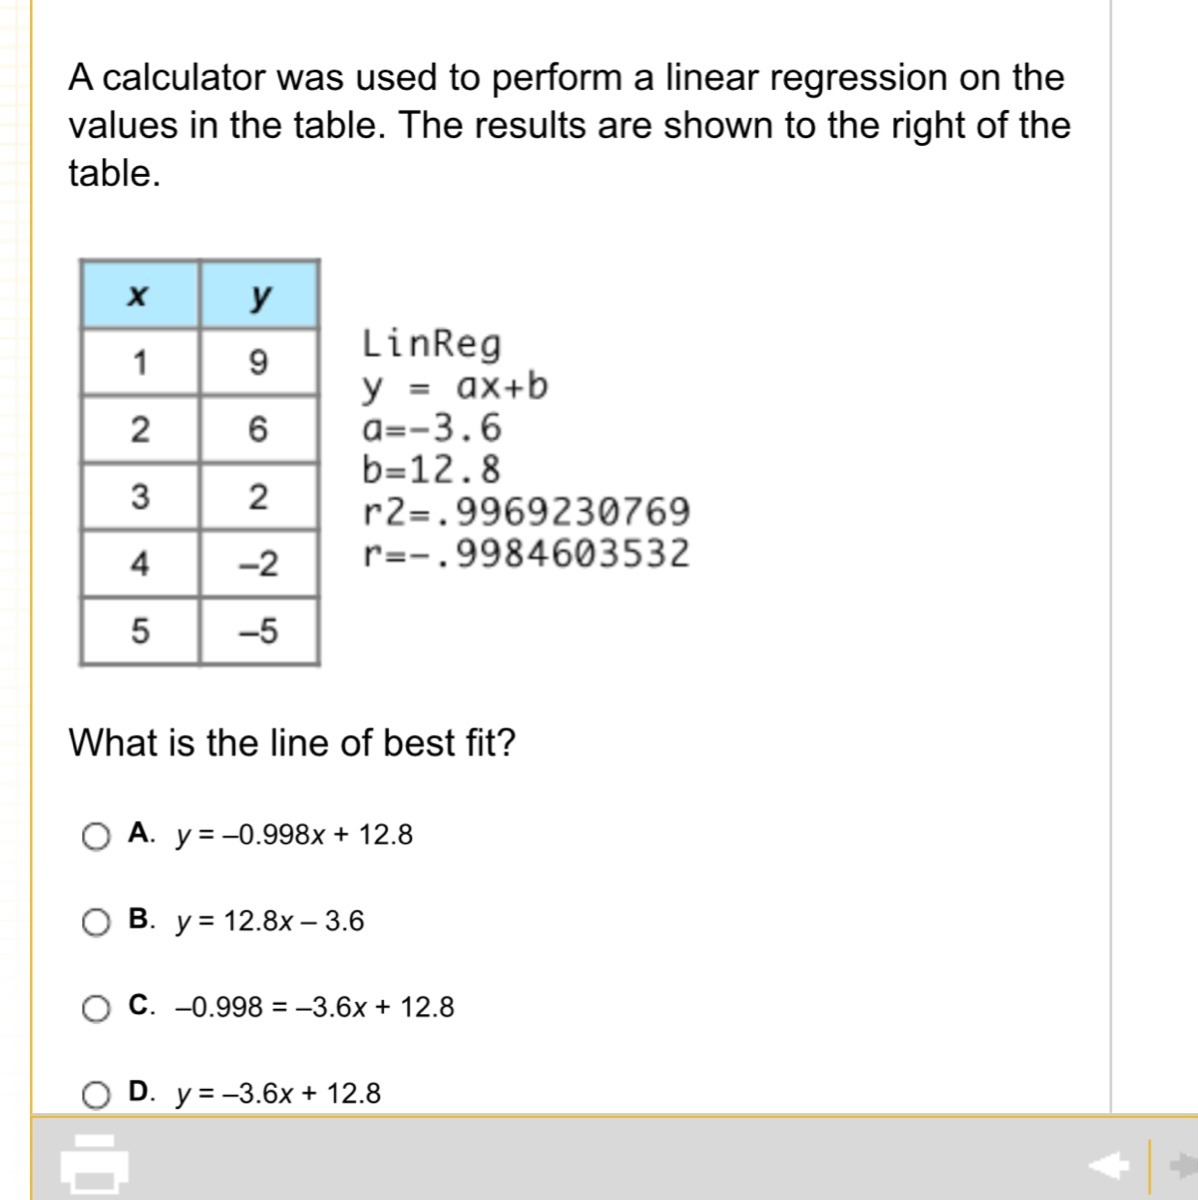 a calculator was used to perform a linear regression on the values